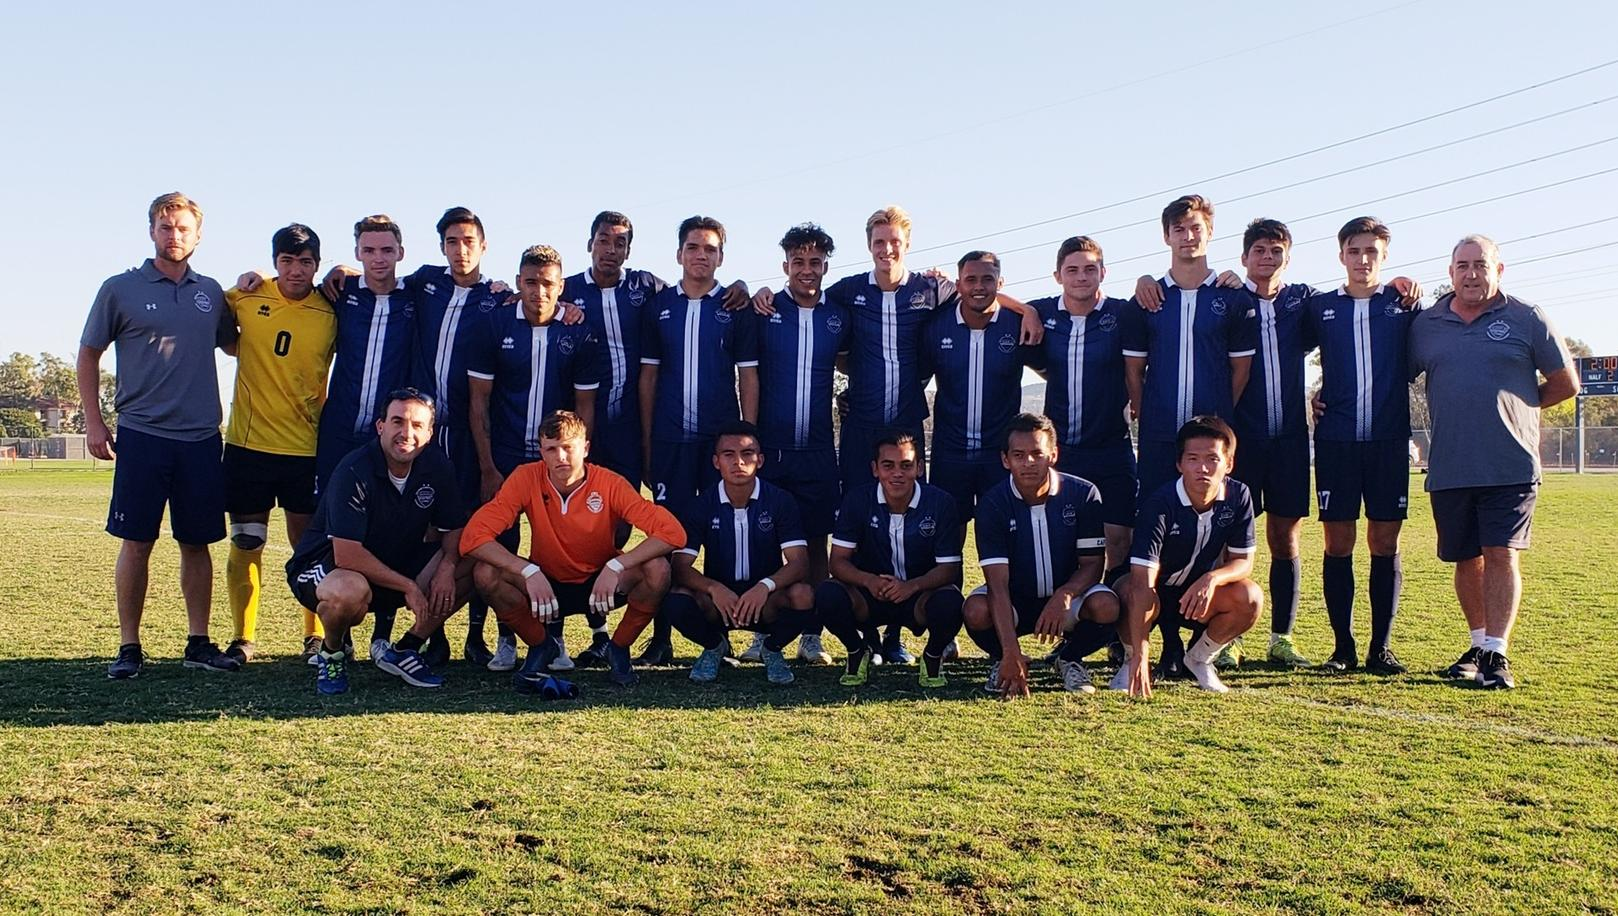 Men's soccer team wins its way into the regional playoffs